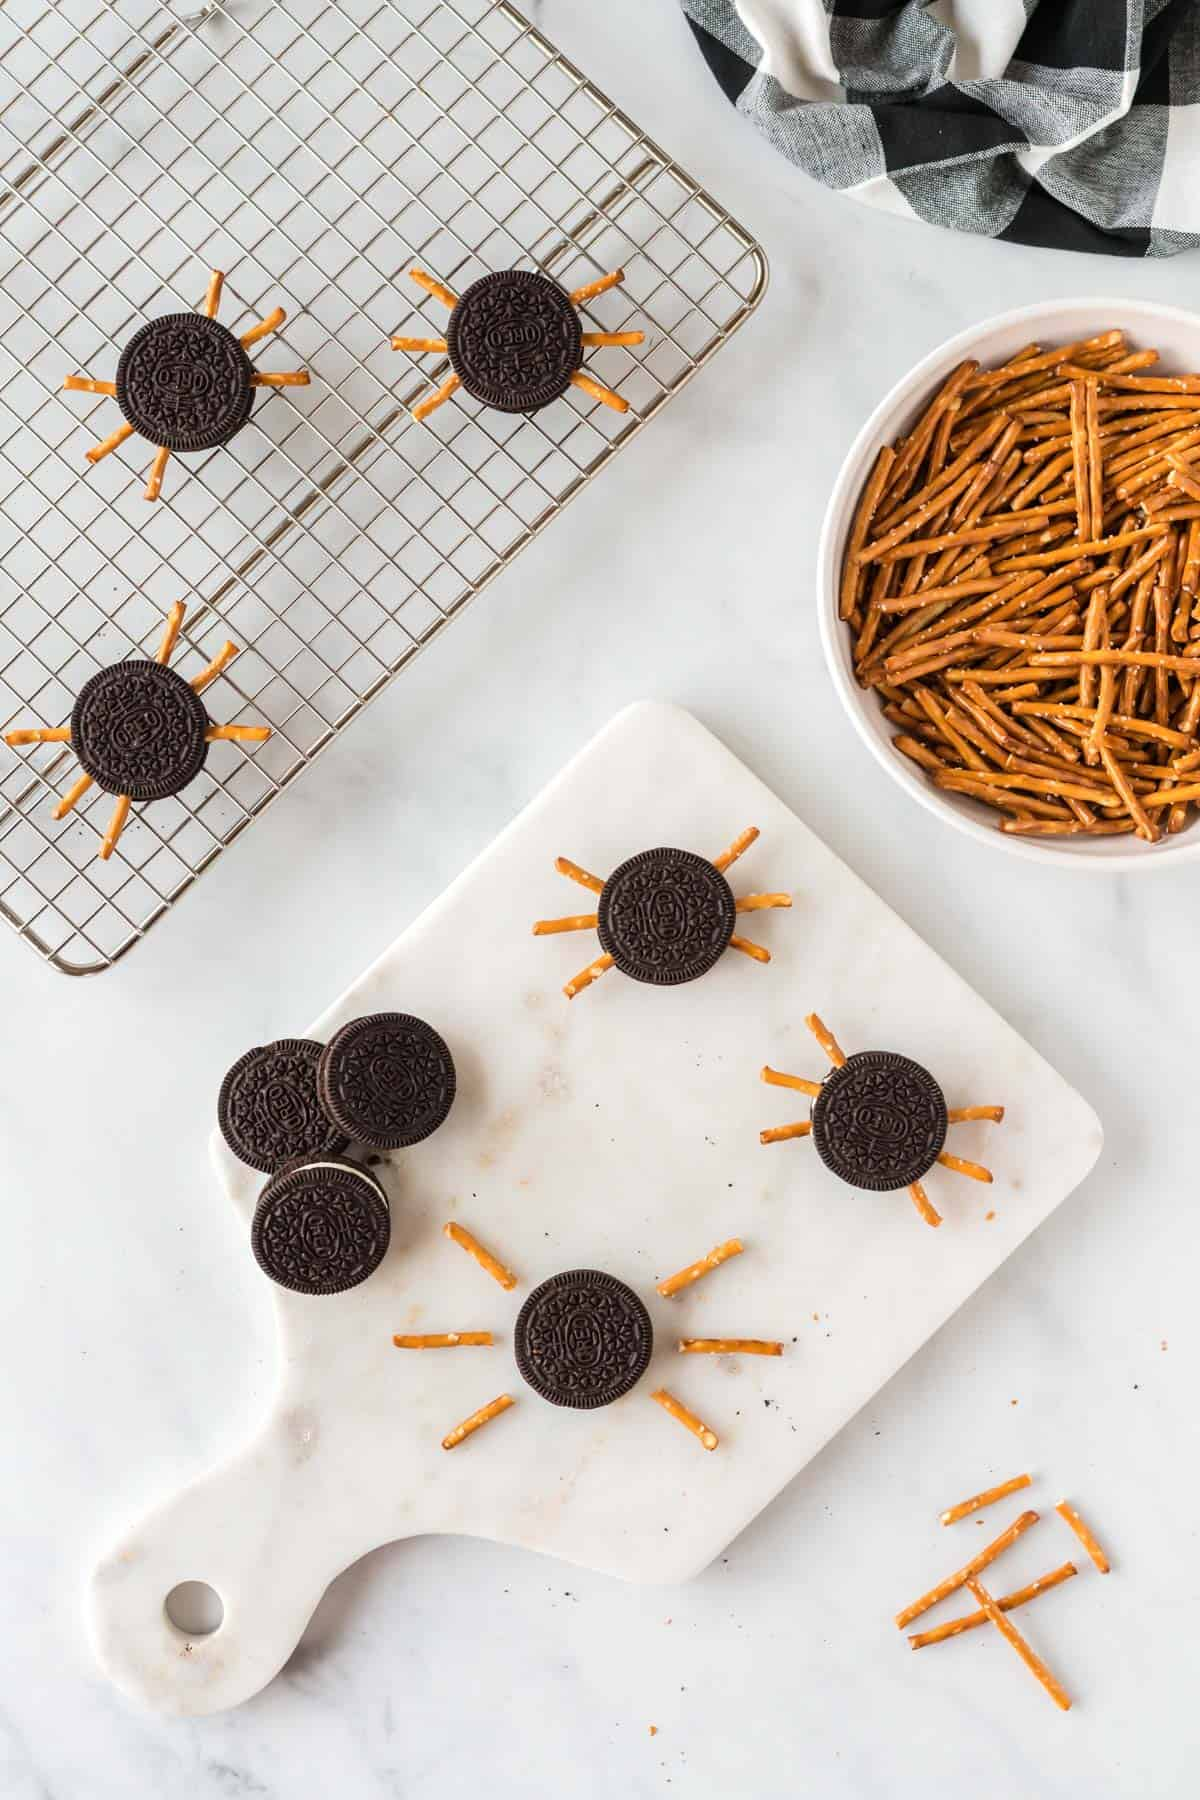 placing the pretzels into the oreo cookie